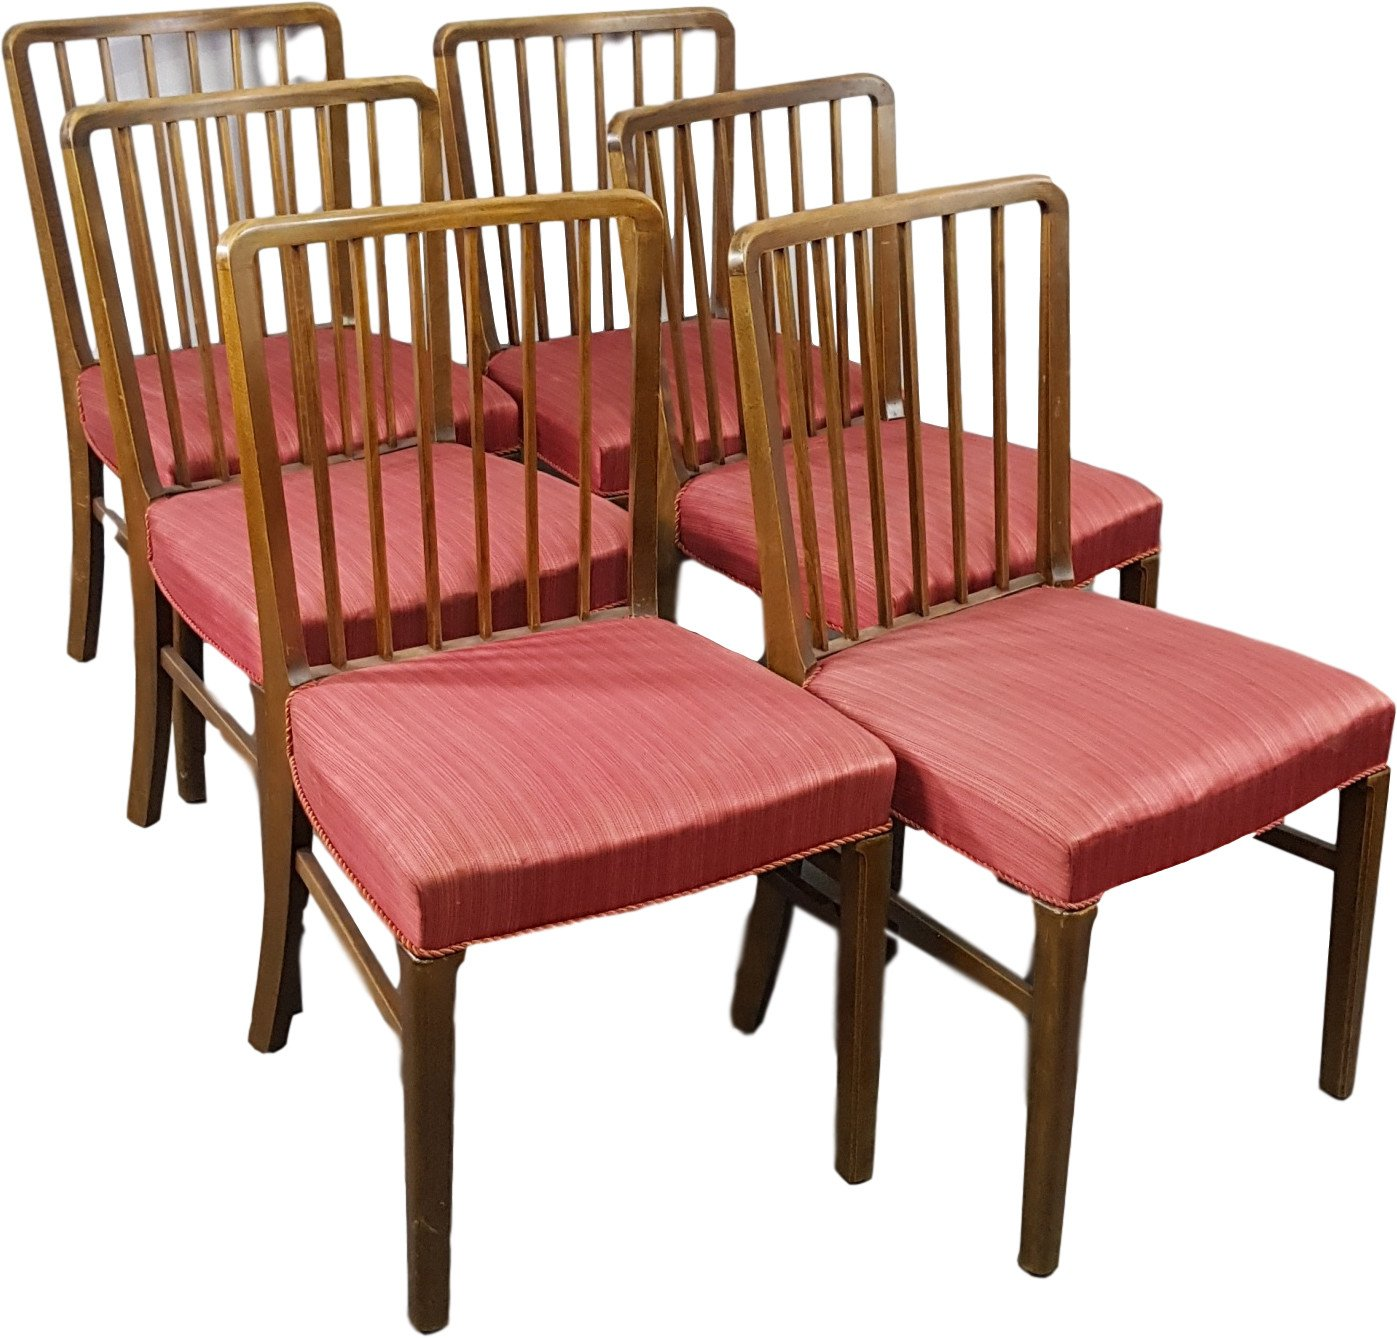 Set of Six Chairs, Denmark, 1930s